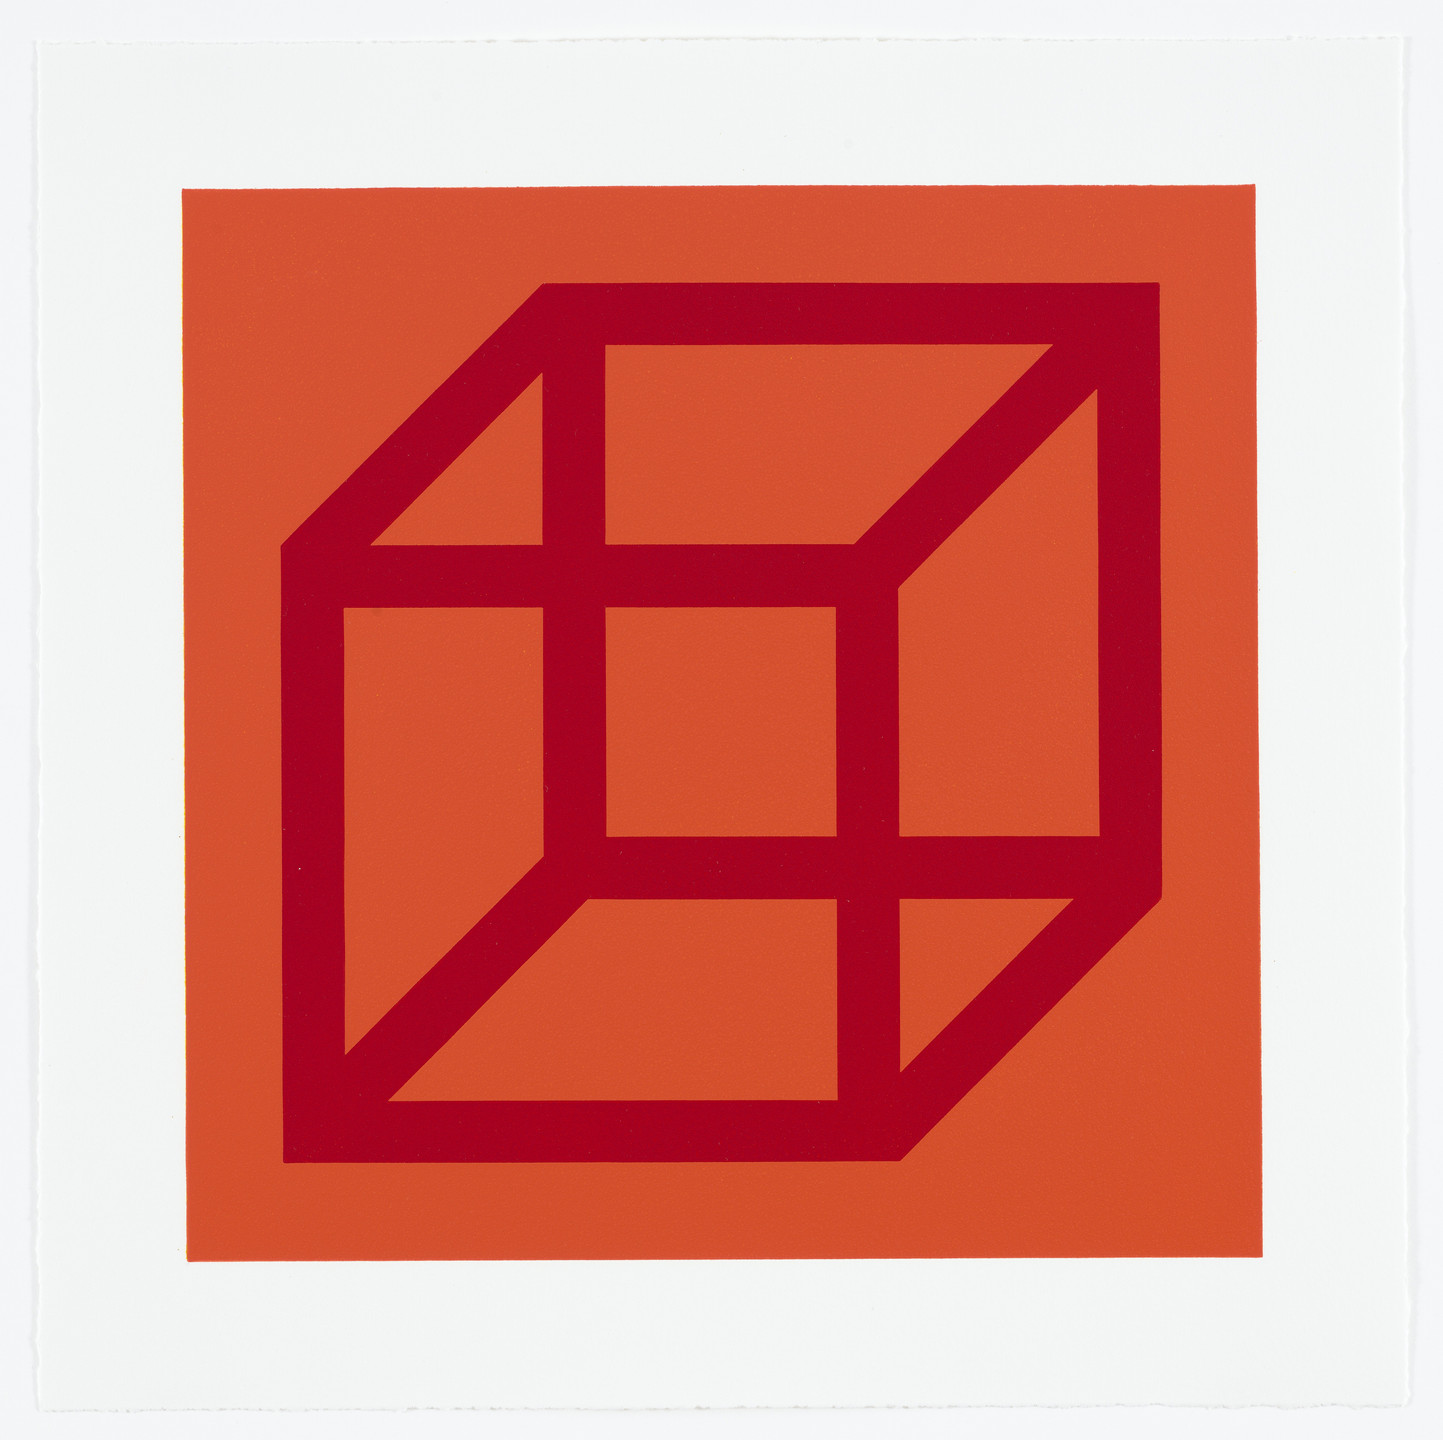 Sol LeWitt. Untitled from Cubes in Color on Color. 2003